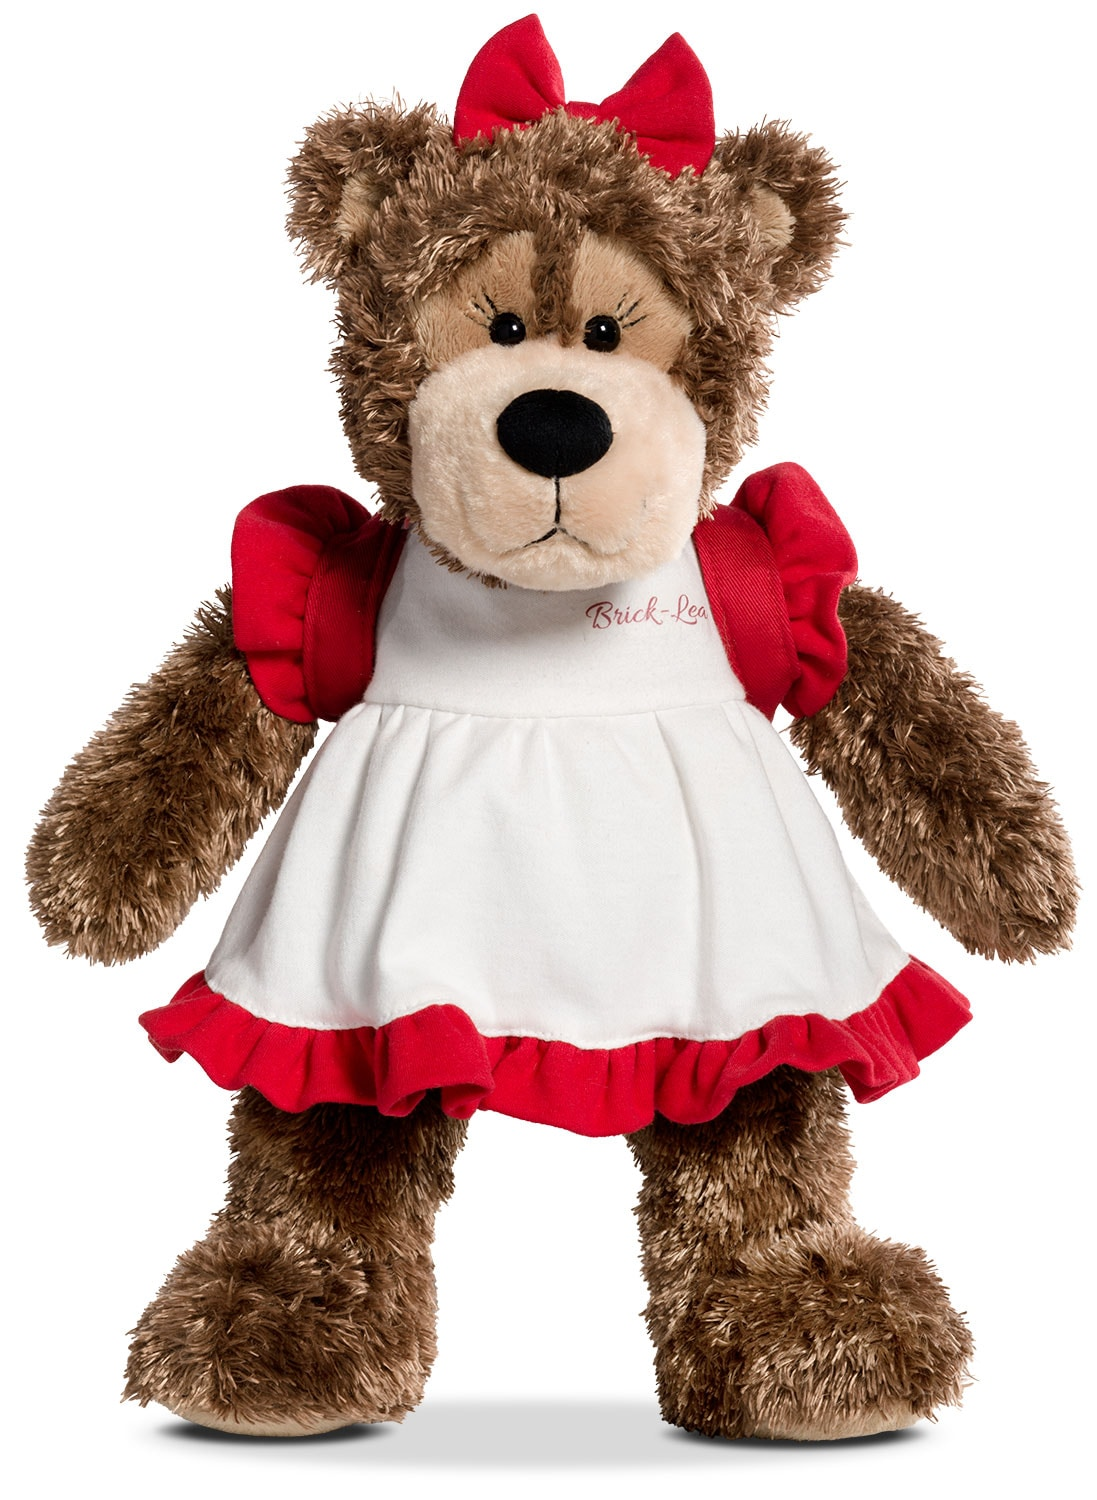 Accent and Occasional Furniture - Schoolgirl Brick-Lea Bear